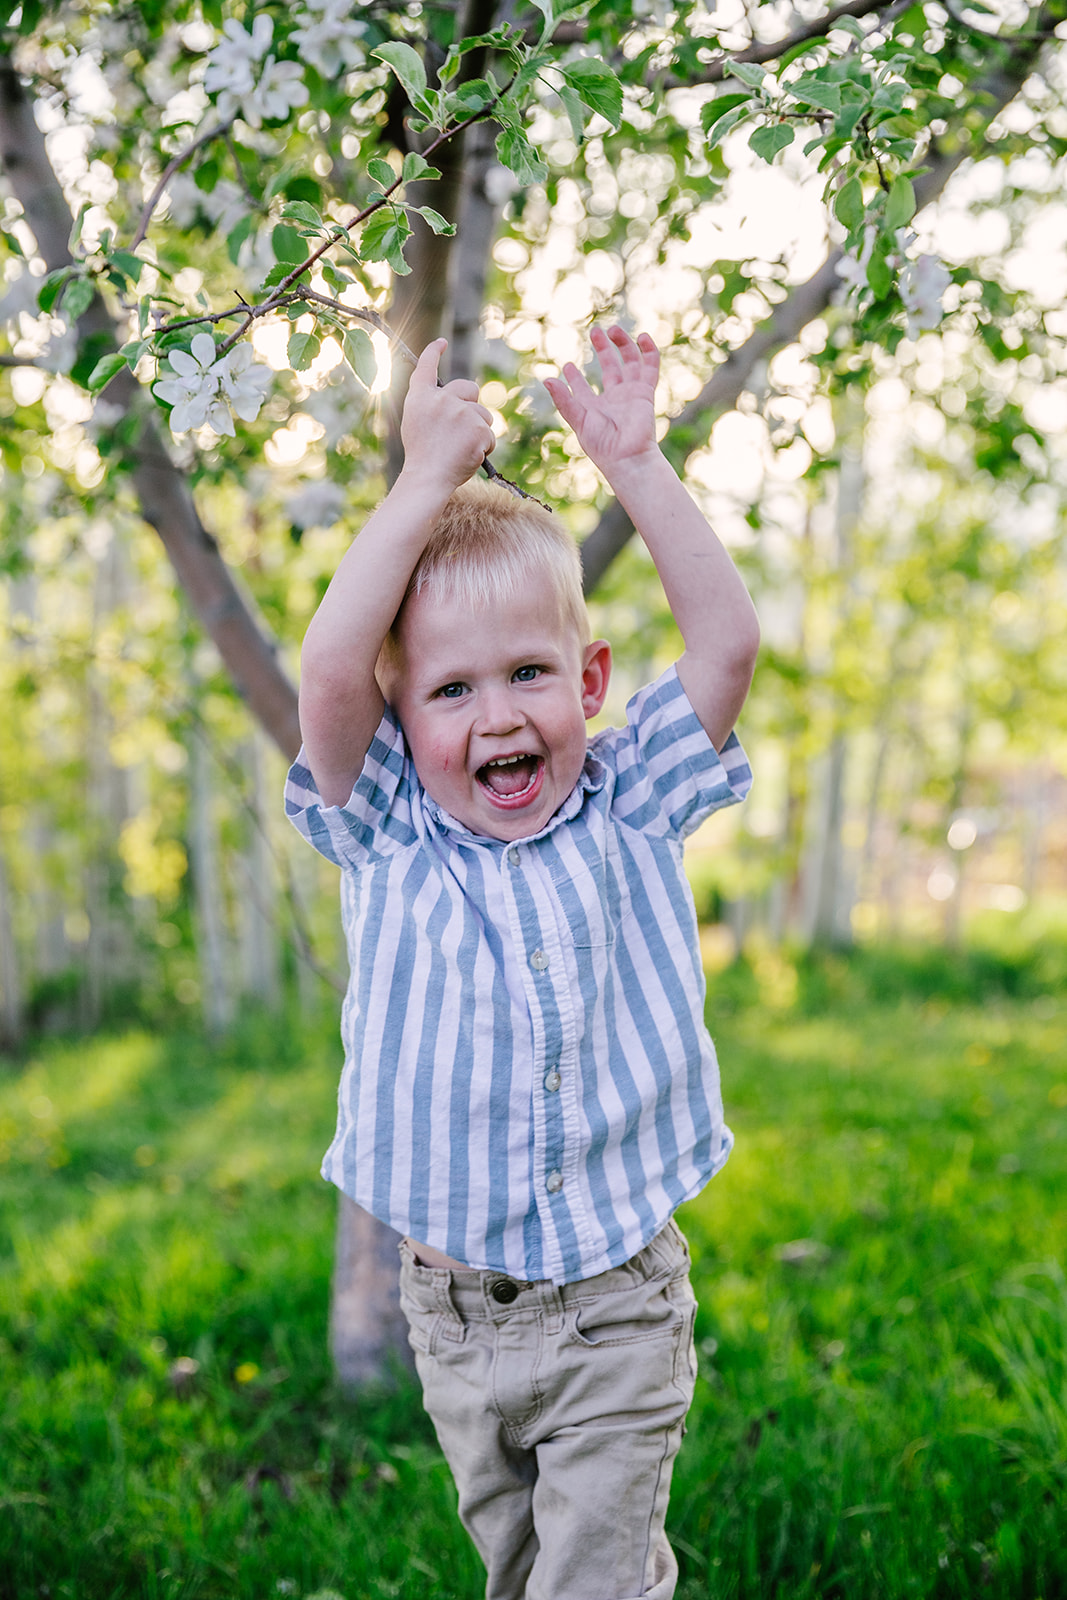 Happy boy in field of flowers. Summer time photos. Laughing boy in green fields Family photos. Ranch style photography. Apple Orchard photography. Professional family photos. Twin parents. Trees blossoming. Tree blossoming photos. #twinboy #appleorchardphotography #summertimephotos #familyphtos #blossomphotos #lookingintoeachotherseyes #happyfamily #formalpictures #greenfieldphotos #hotsummernights #laughingboy